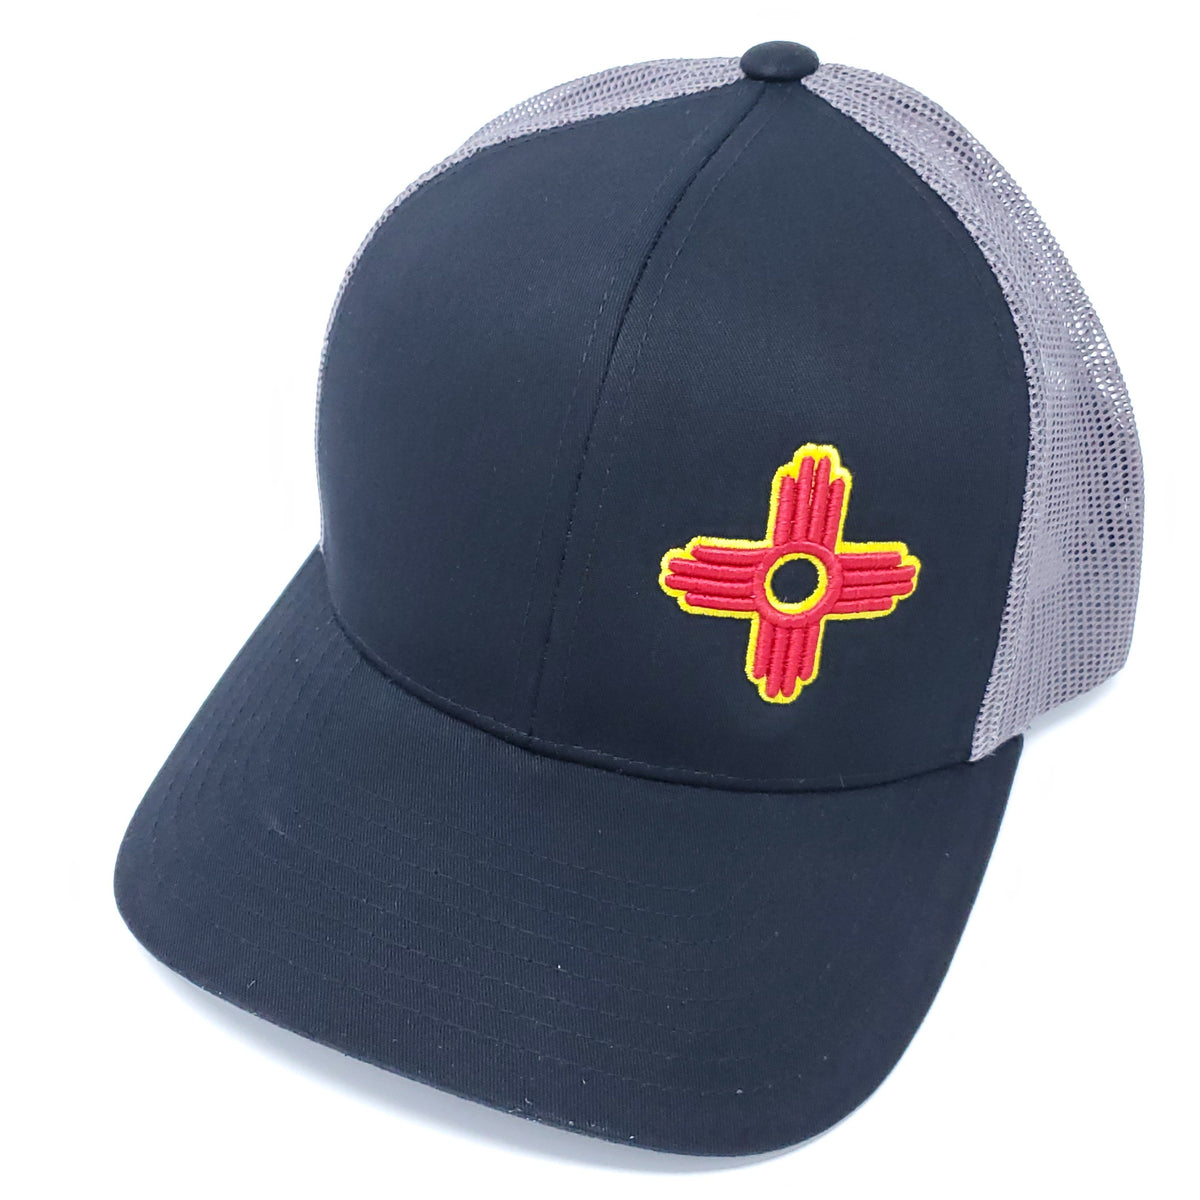 Zia Embroidered Trucker Style Snapback - Ragged Apparel Screen Printing and Signs - www.nmshirts.com